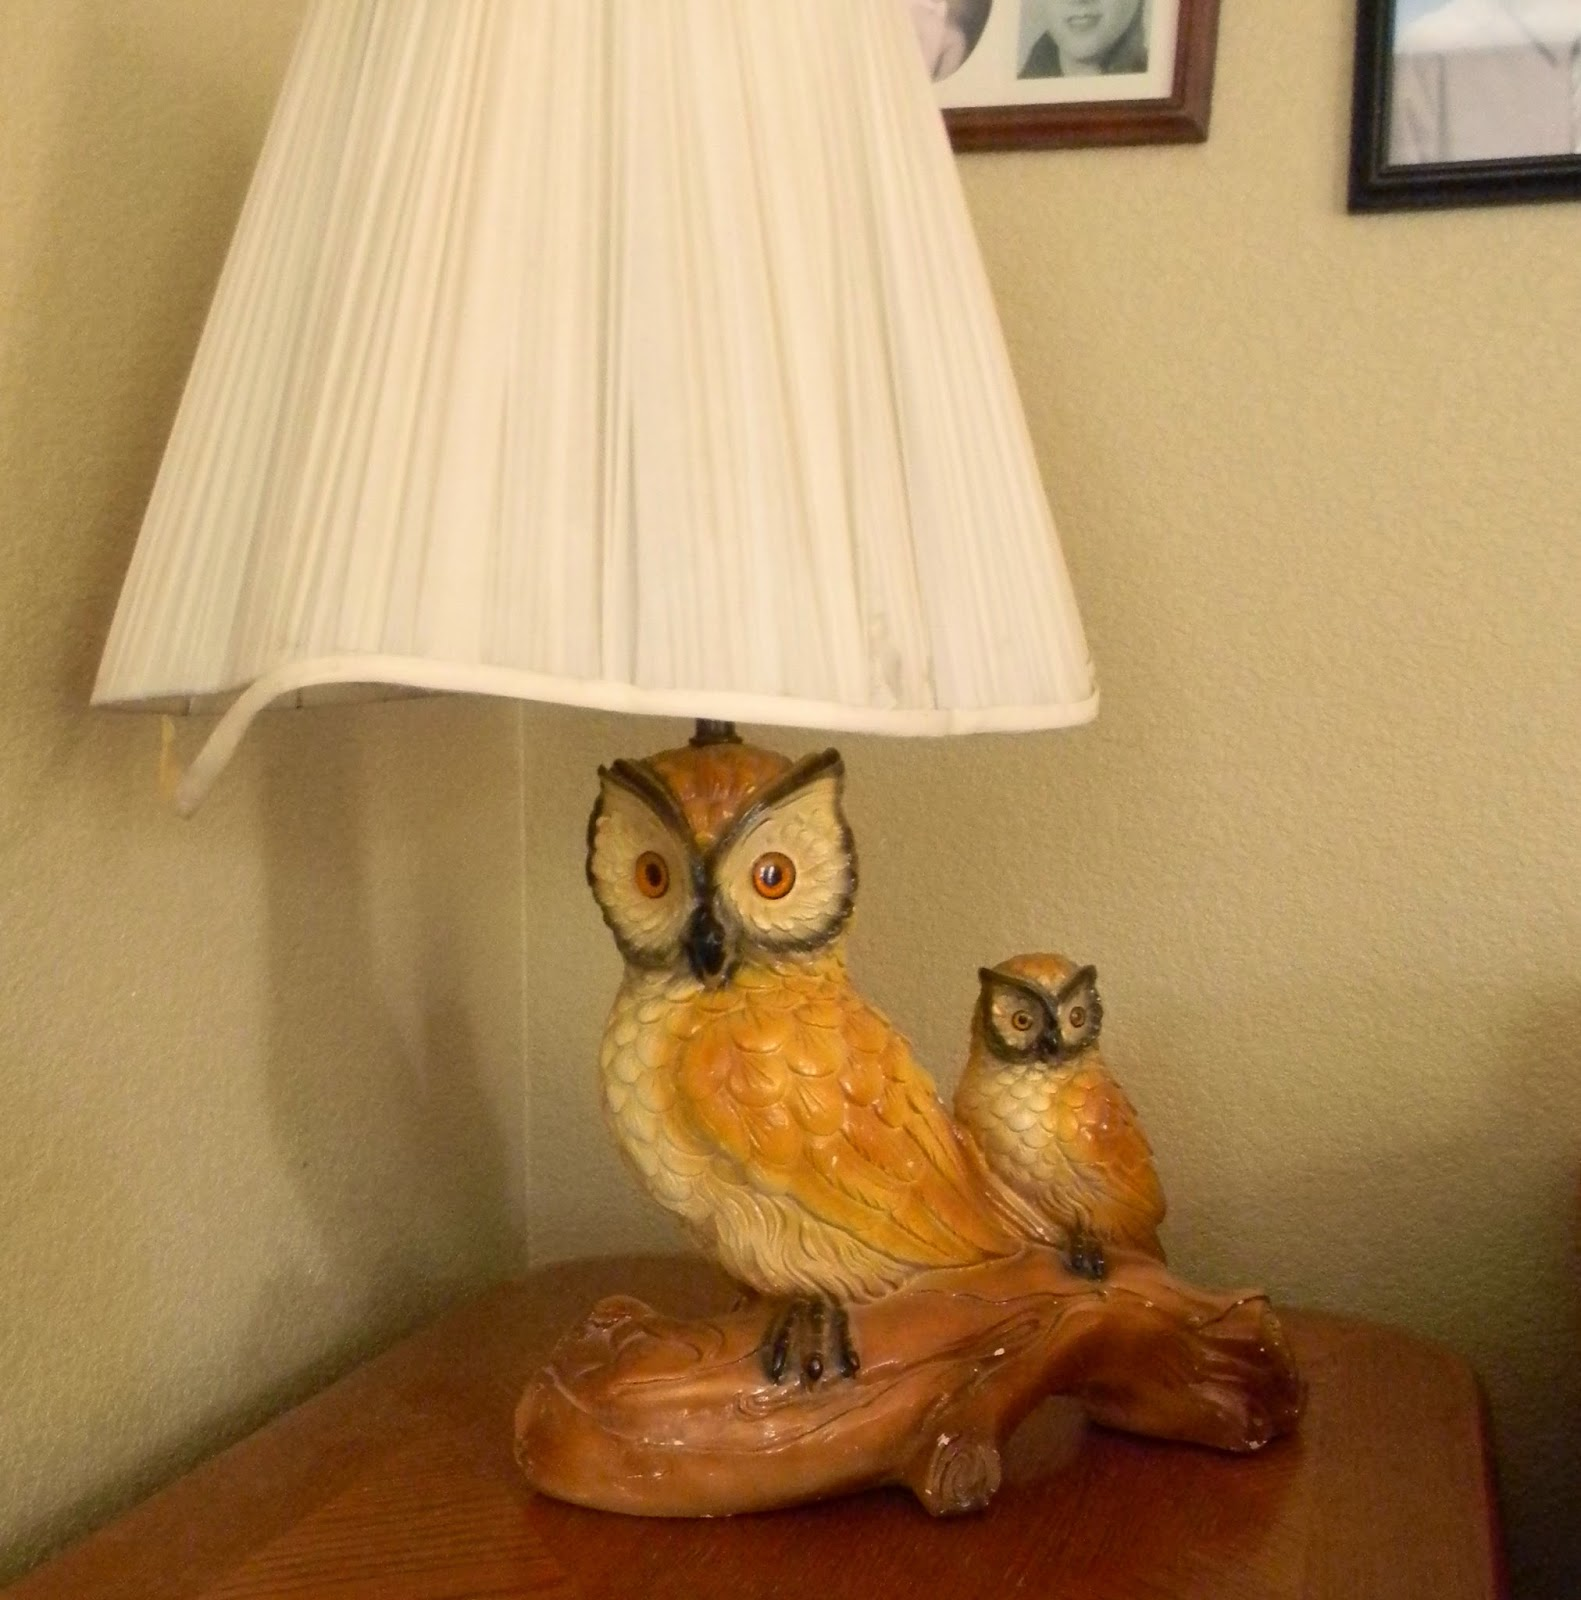 Vintage owl lamps - A Couple Of Years Ago I Found This Awesome Ceramic Owl Lamp At A Yard Sale I Was So Stoked About It That I Put It In My Living Room And Took